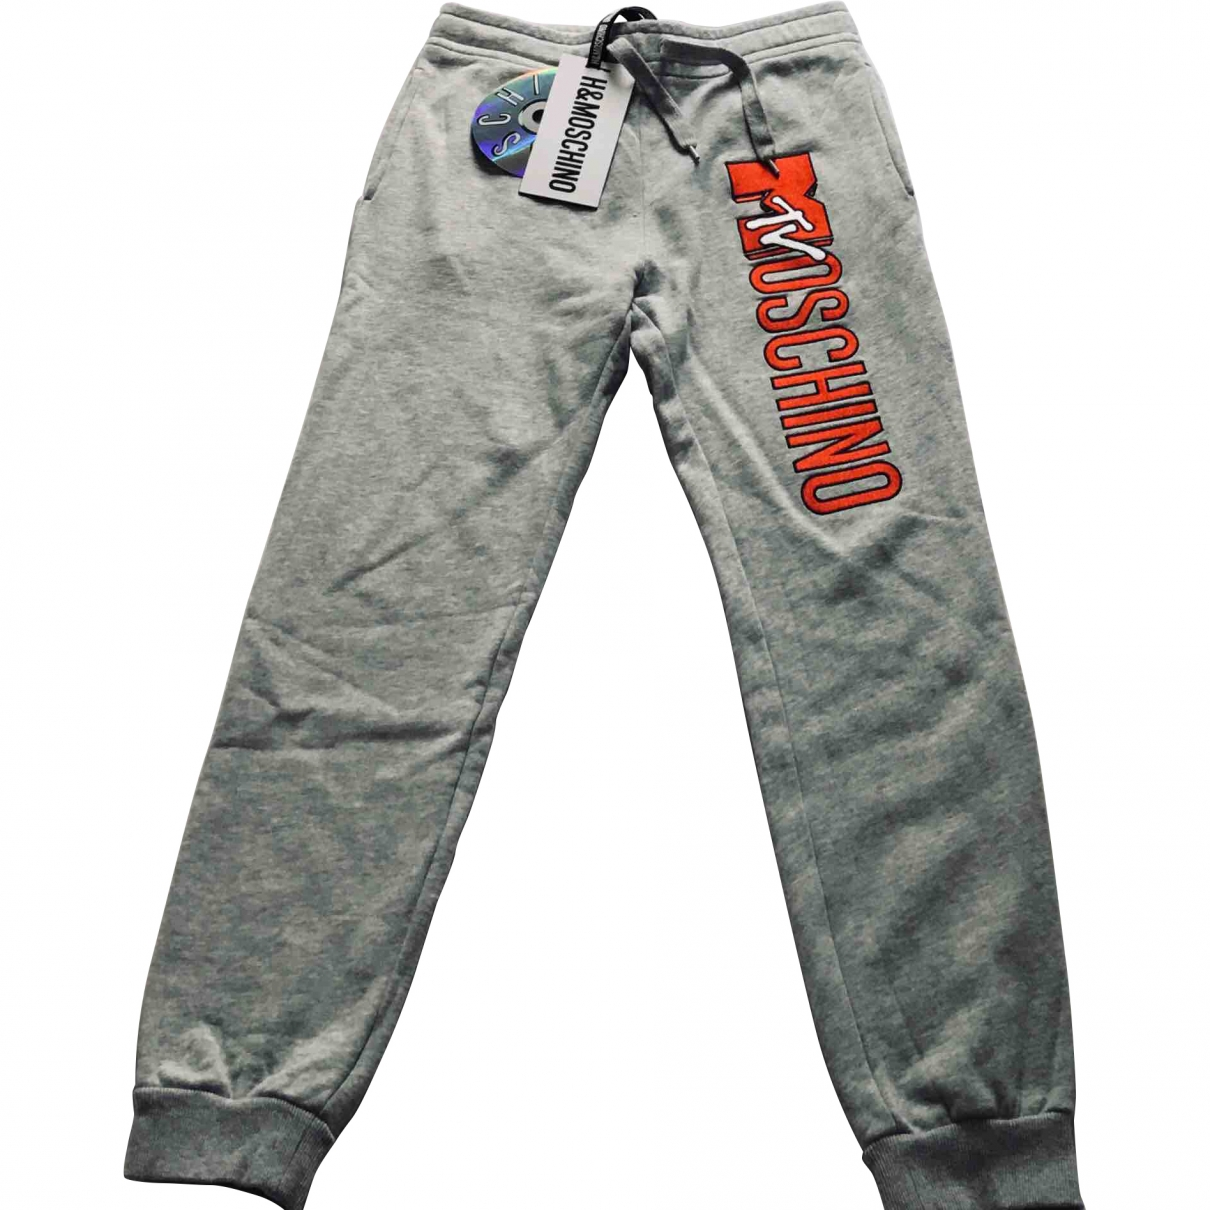 Moschino For H&m \N Grey Cotton Trousers for Men S International